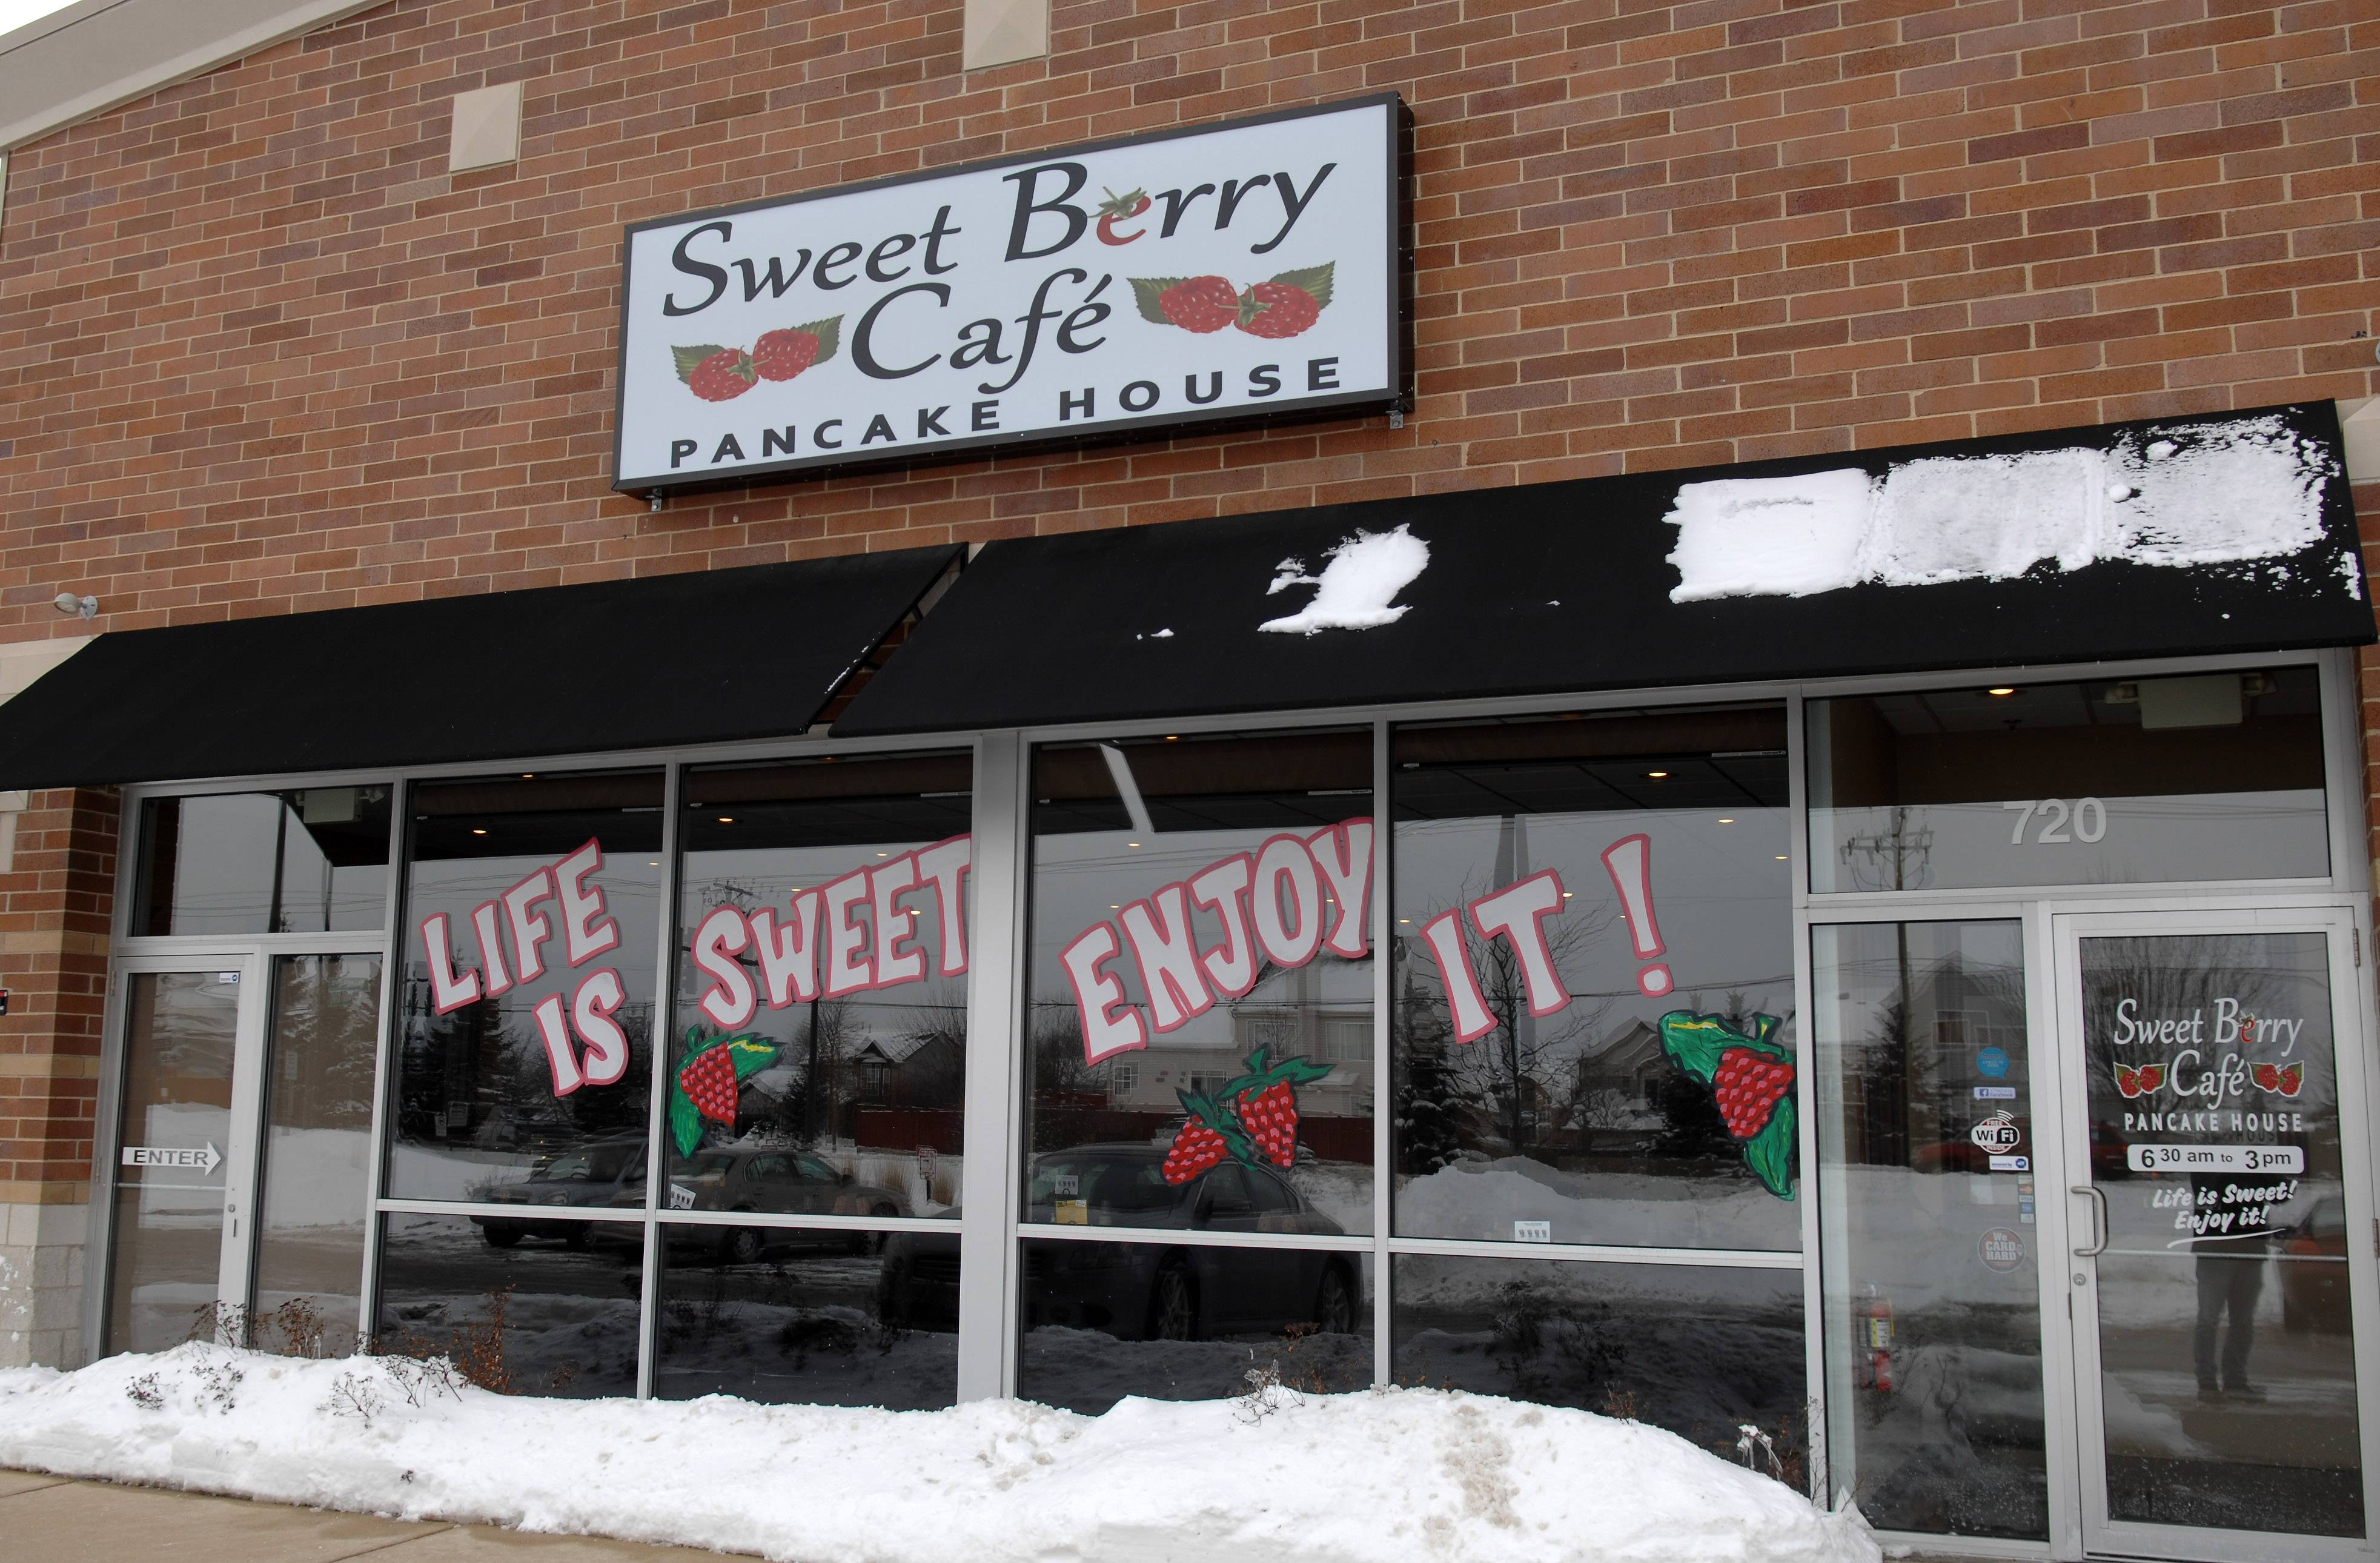 Sweet Berry Cafe opened last year on McLean Boulevard in South Elgin.